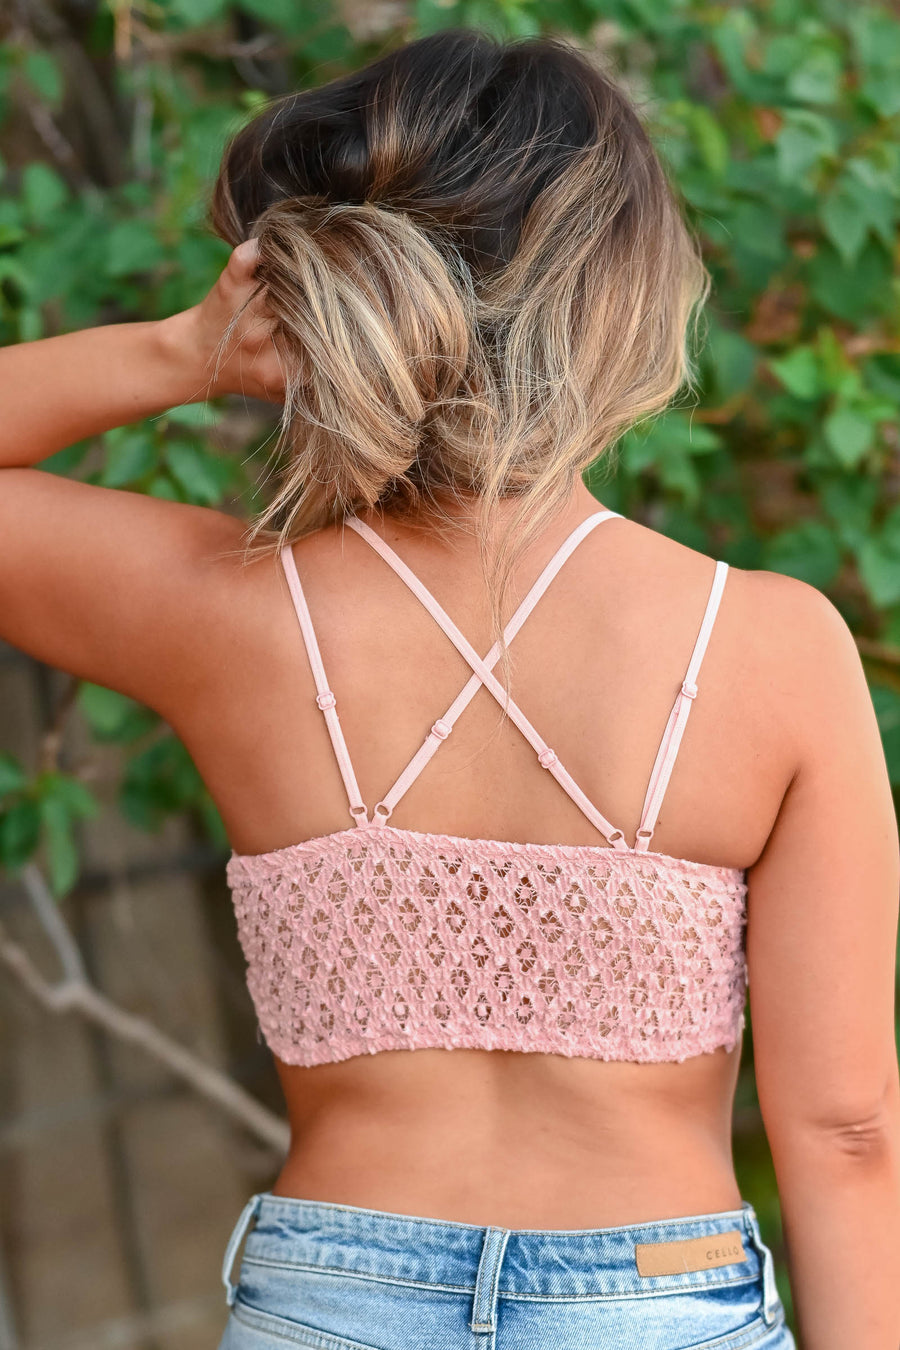 Day Dreamer Bralette - Pale Rose Women's double strap floral lace padded front bralette with criss cross back detail and scalloped edge. Smocked bandeau back and adjustable elastic straps closet candy close up